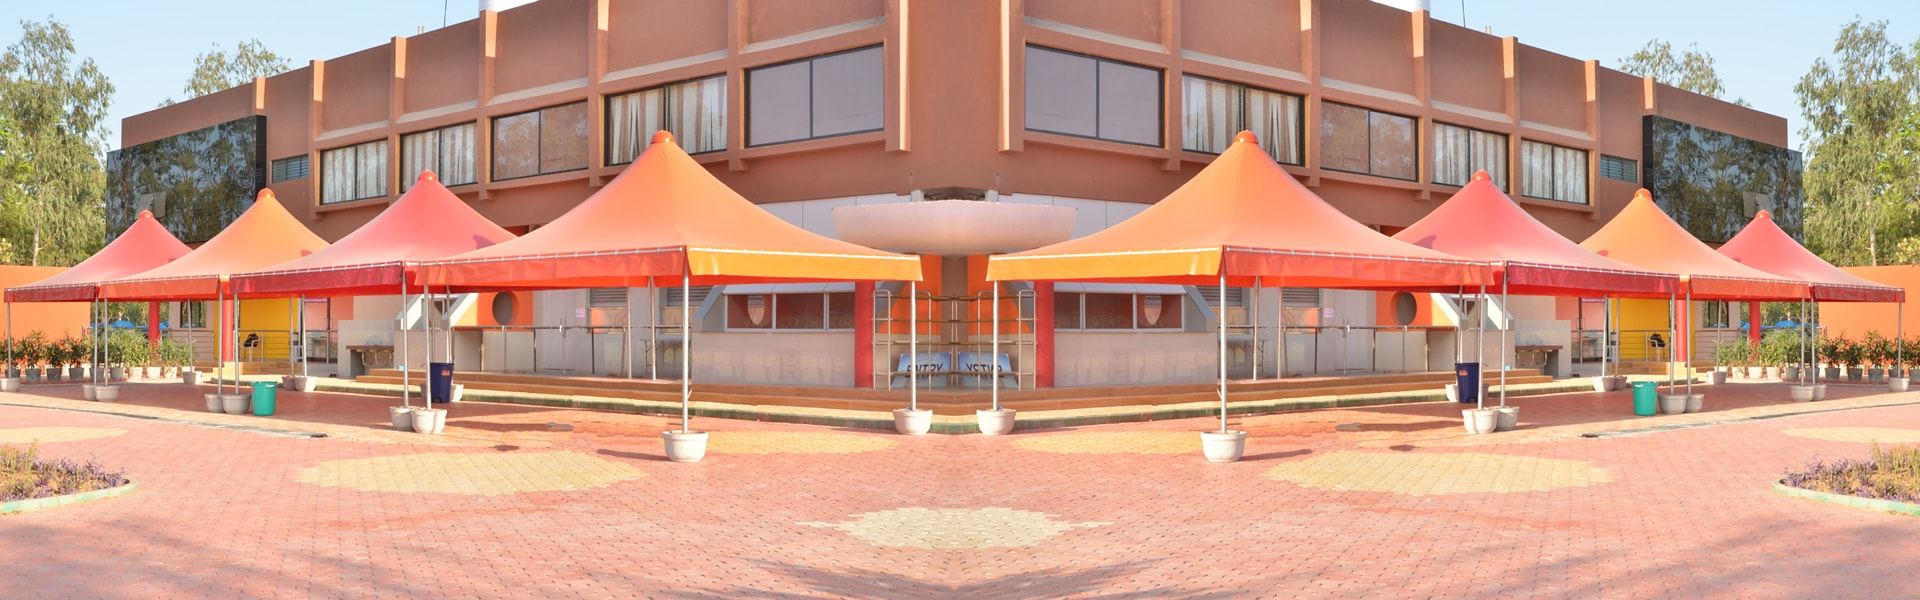 tensile structure manufacturer in india